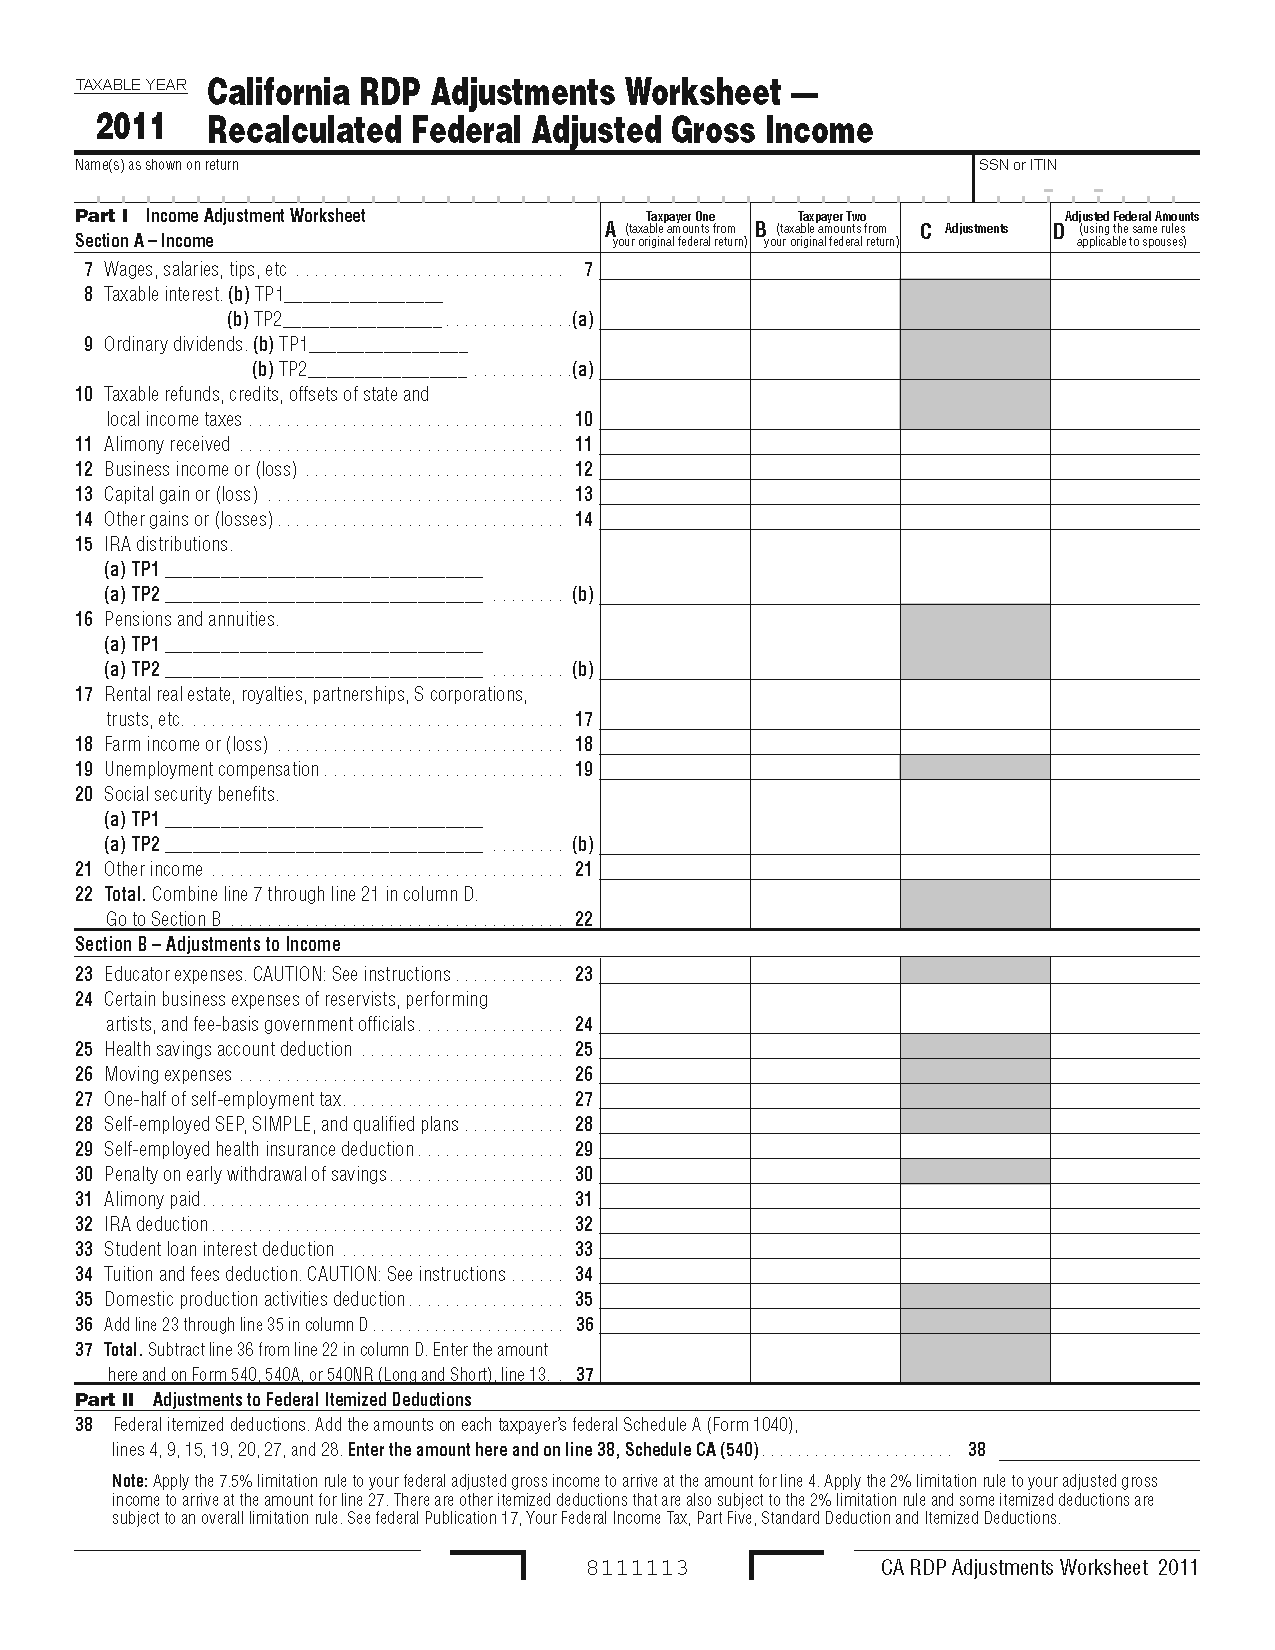 Worksheets Deductions And Adjustments Worksheet